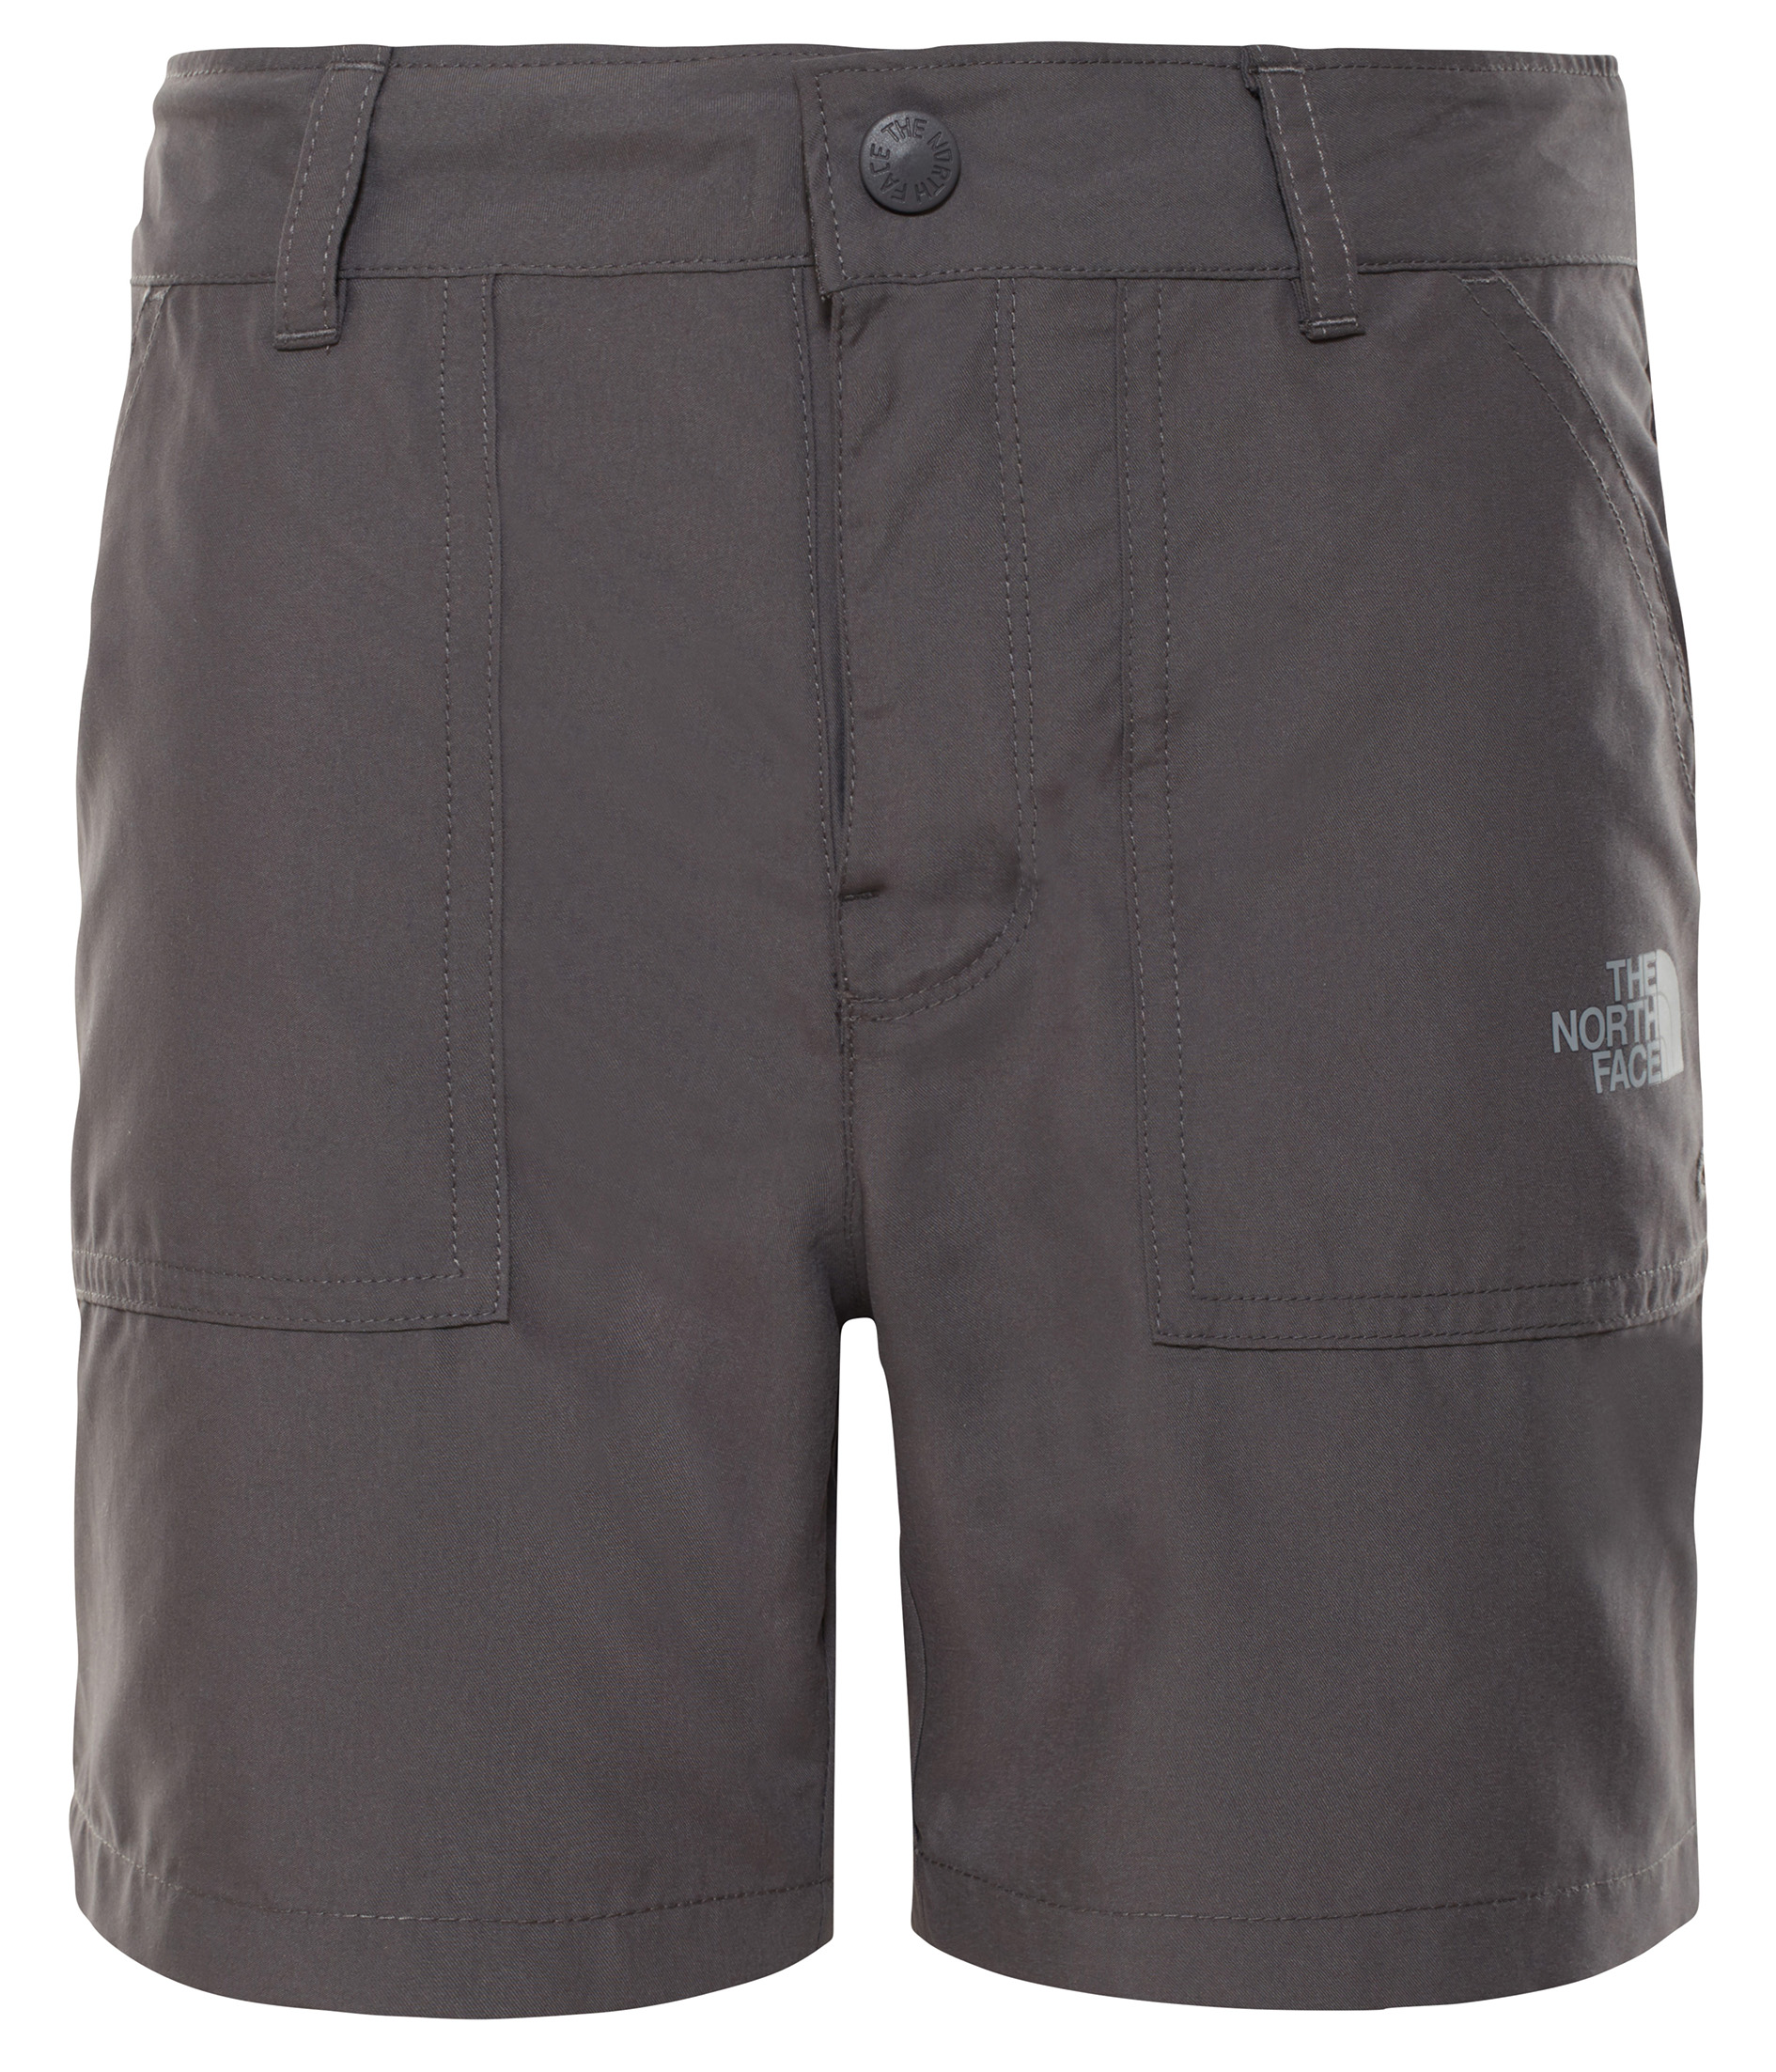 THE NORTH FACE G AMPHIBIOUS SHORT, GRAPHITE GREY velikost: M